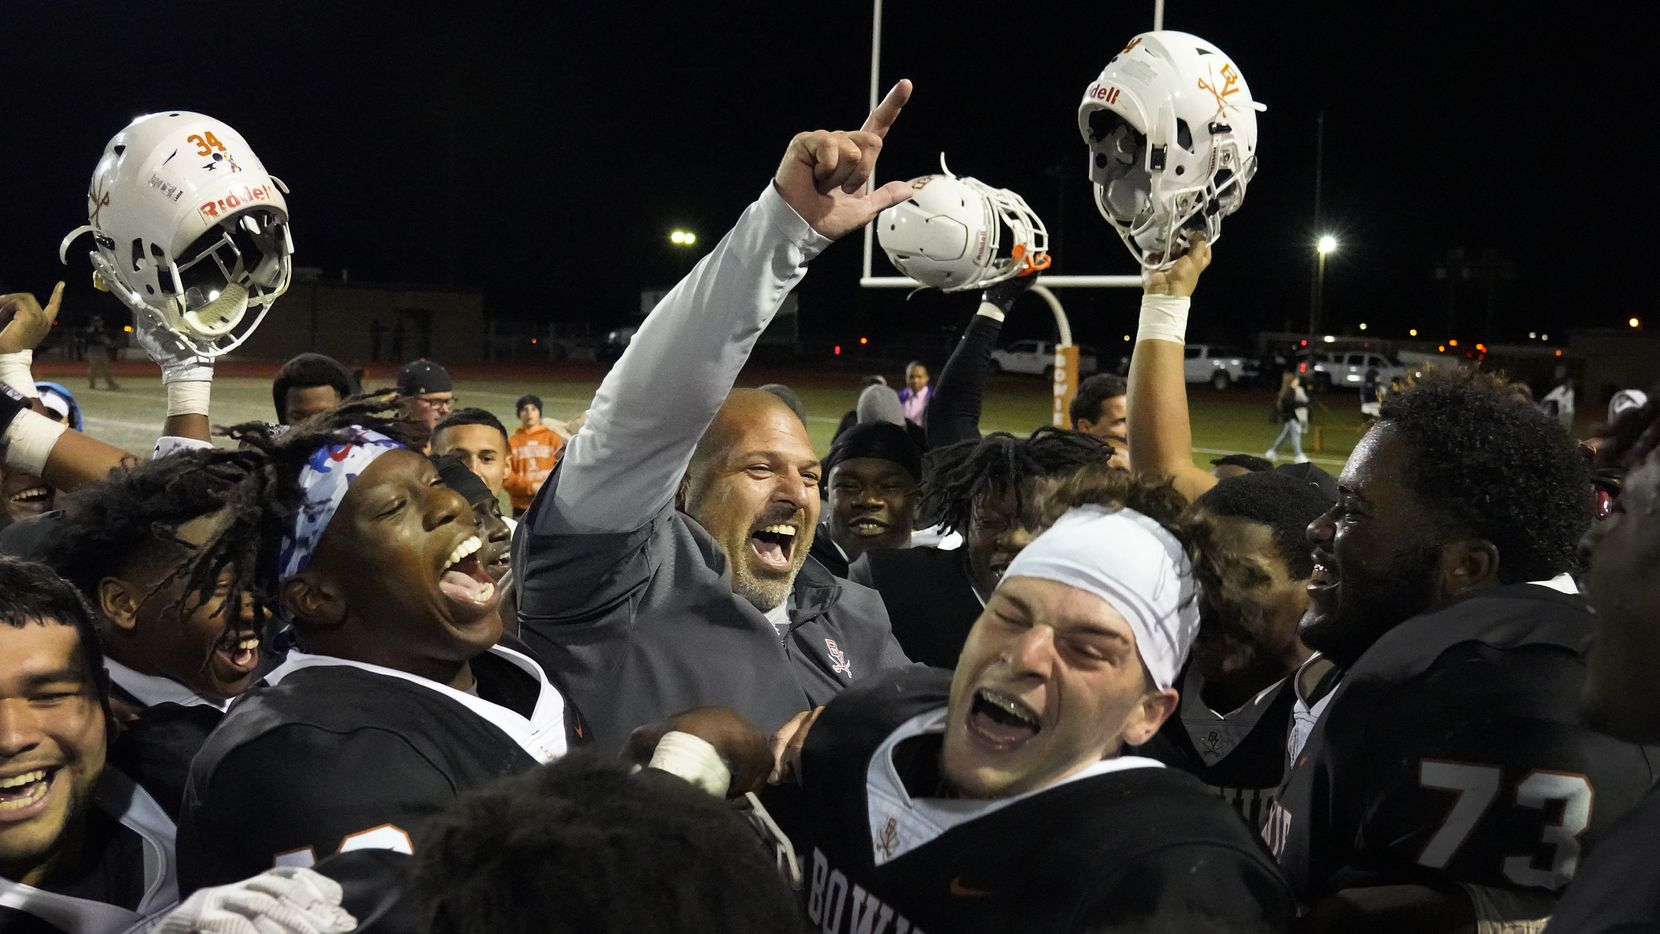 Arlington Bowie head coach Danny DeArman celebrates with his players after a victory over Arlington High School in a high school football game at Wilemon Field on Friday, Oct. 11, 2019, in Arlington, Texas. (Smiley N. Pool/The Dallas Morning News)